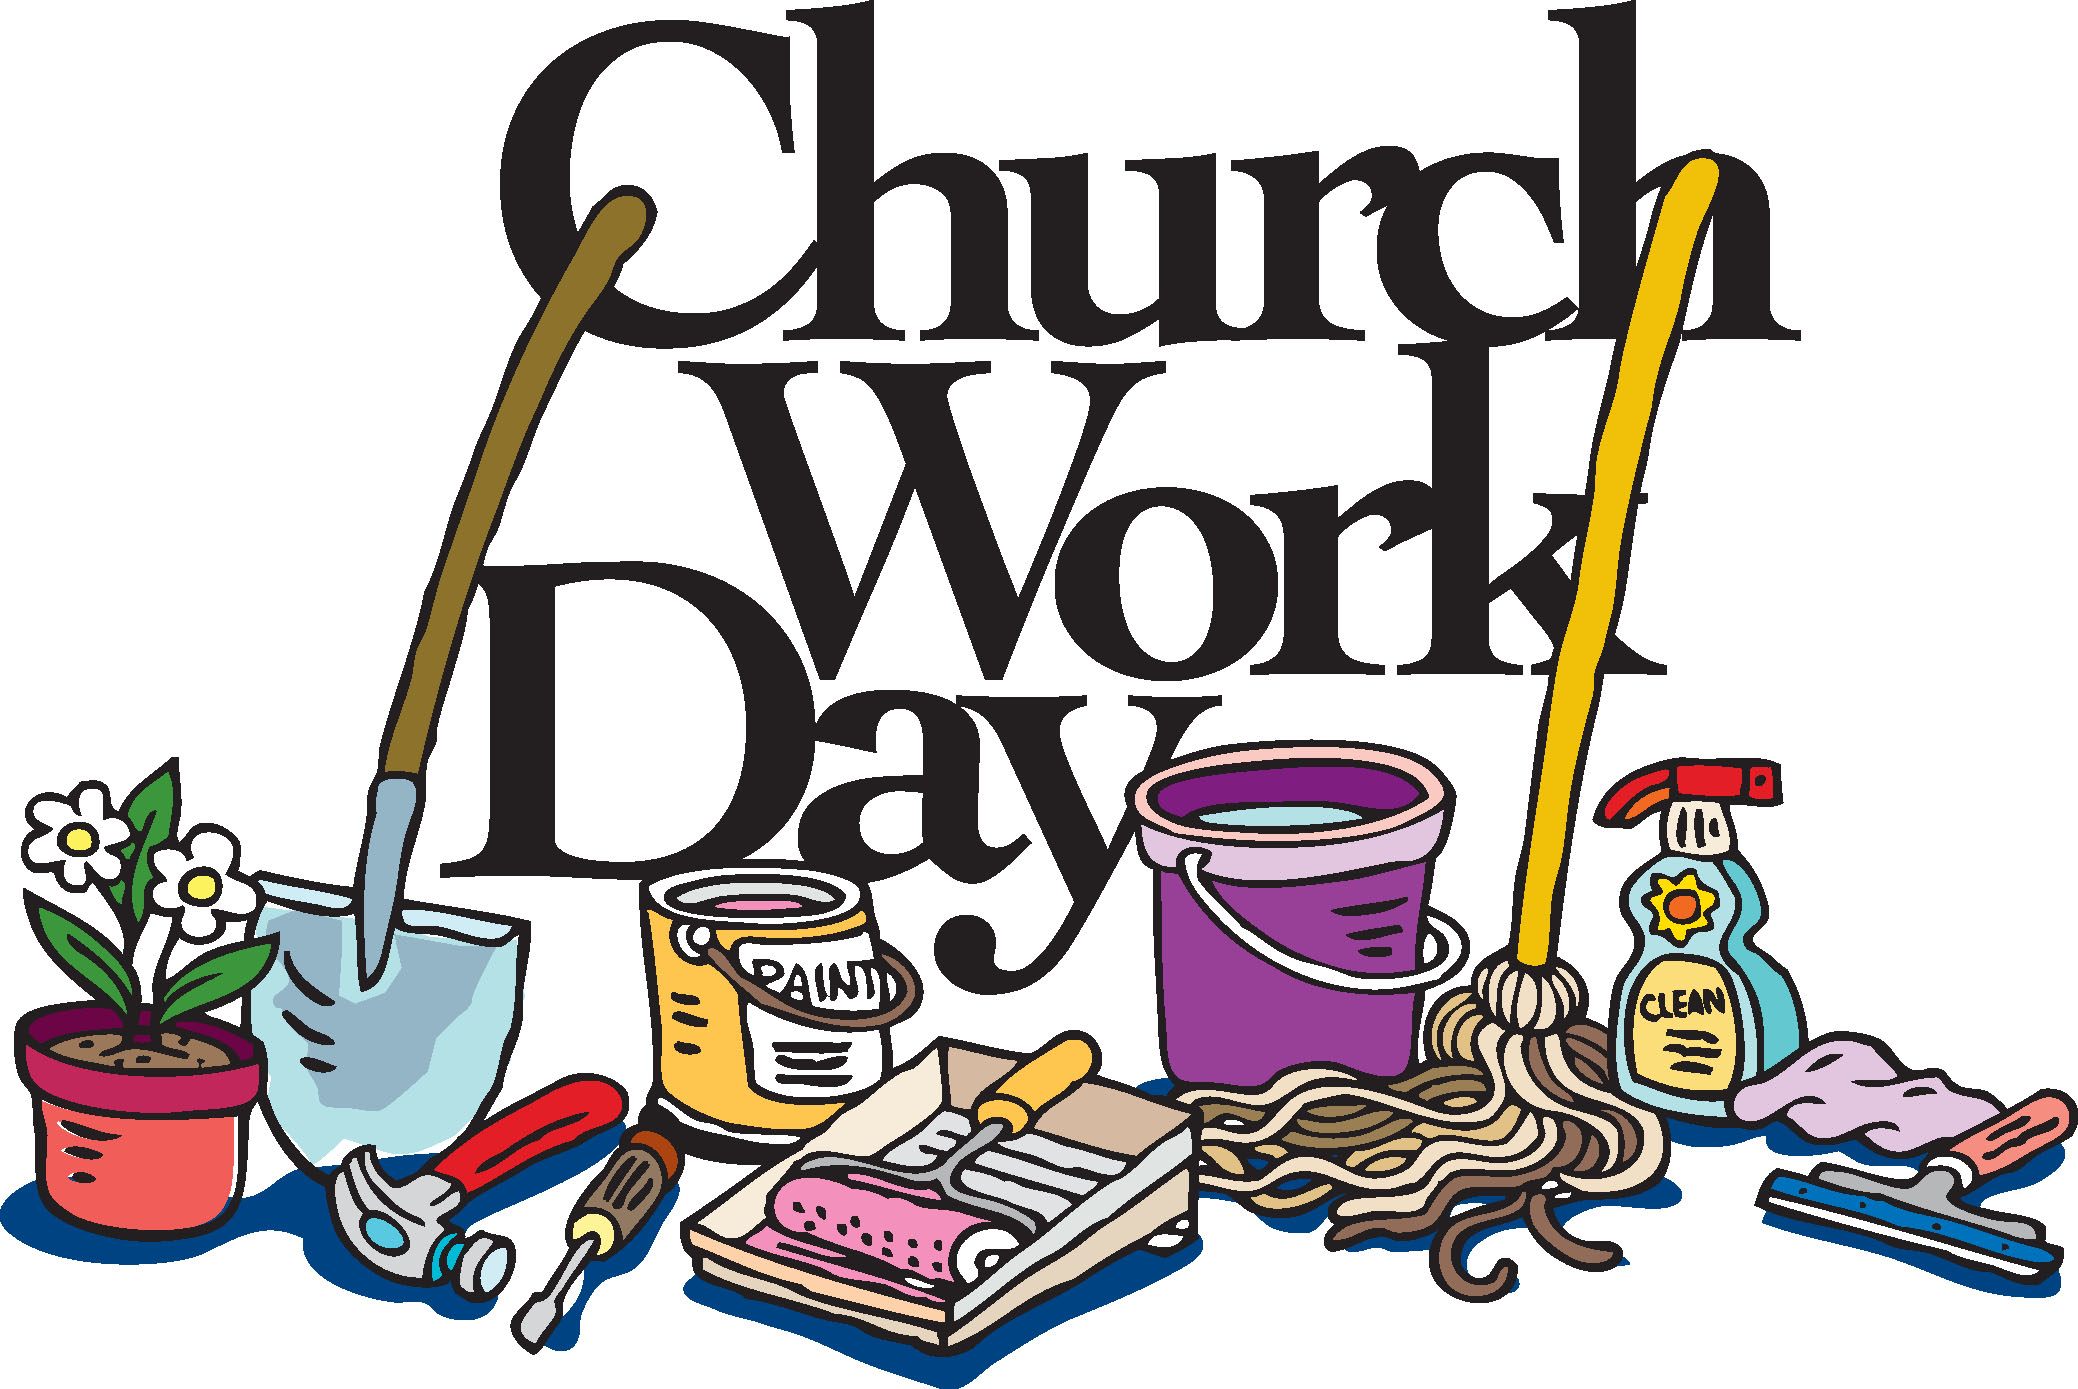 church work day parish clean up 2016 st georges episcopal church rh stgeorgesglenndale org clean up clip art free community clean up clipart